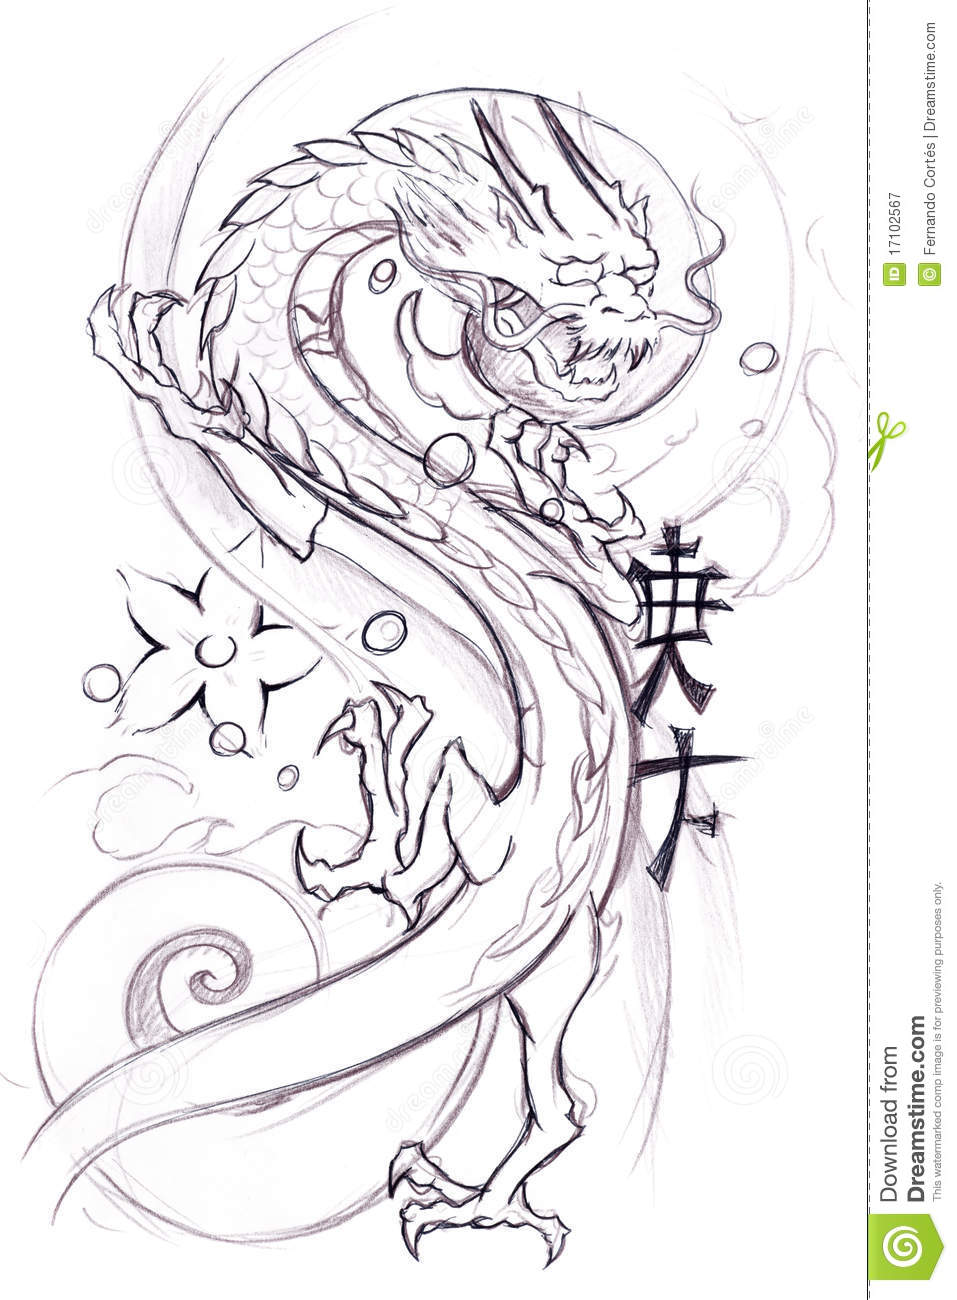 tattoo art sketch of a japanese dragon stock illustration image 17102567. Black Bedroom Furniture Sets. Home Design Ideas